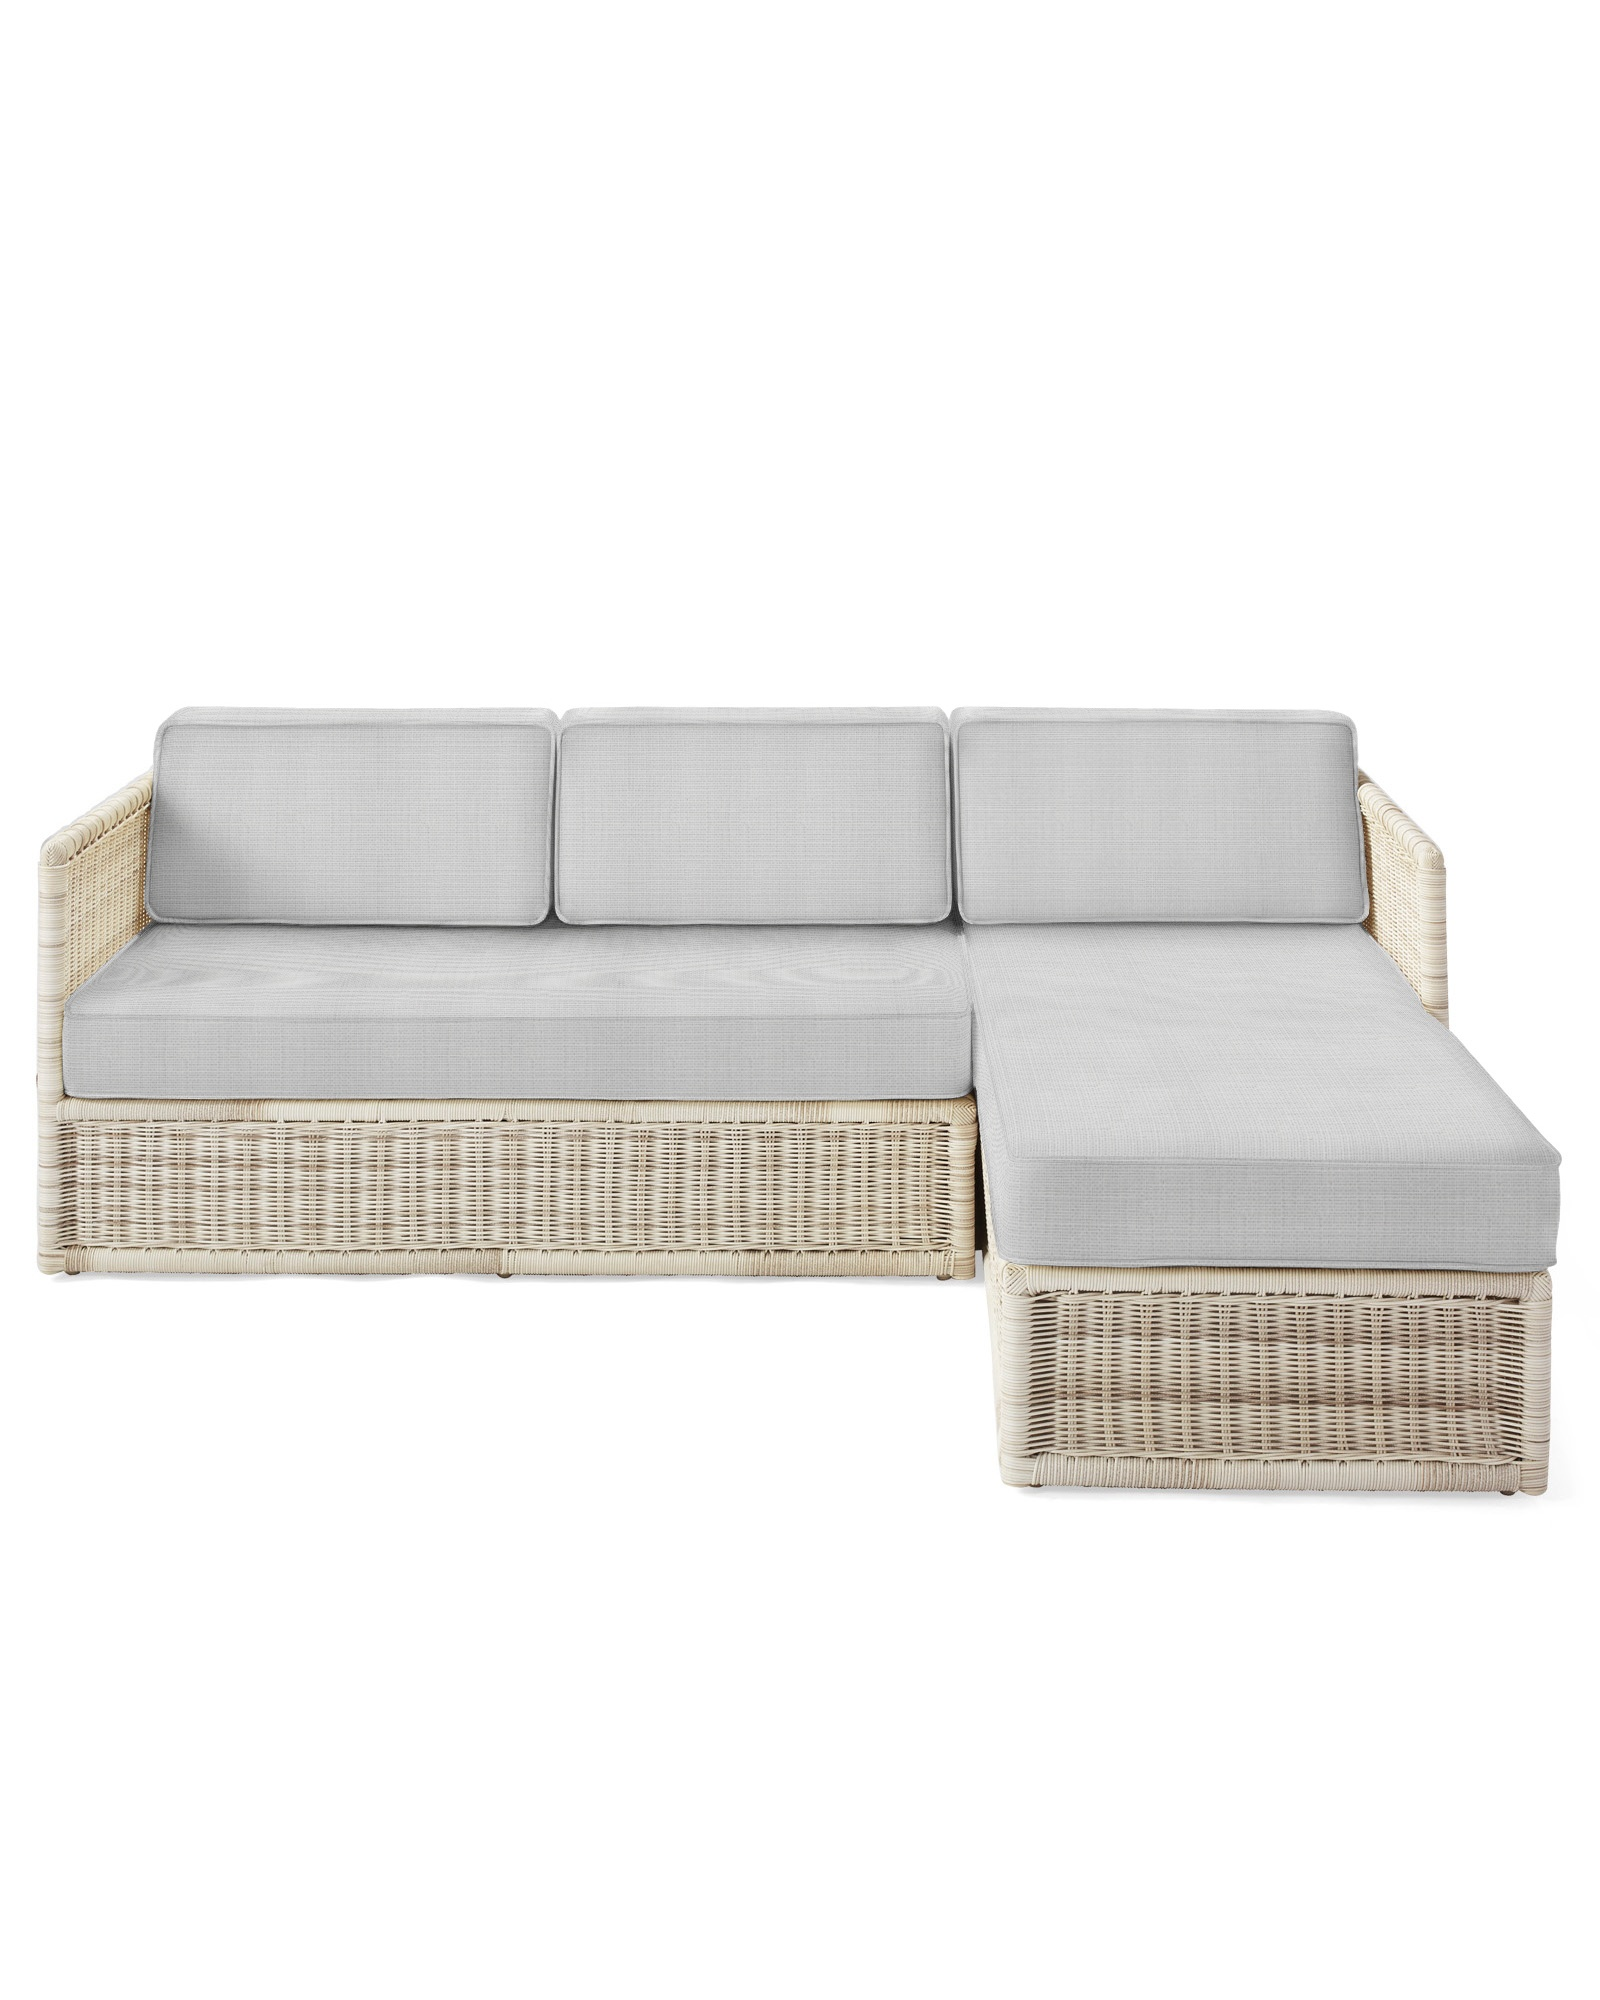 Cushion Cover for Pacifica Chaise Sectional, Perennials Basketweave Fog